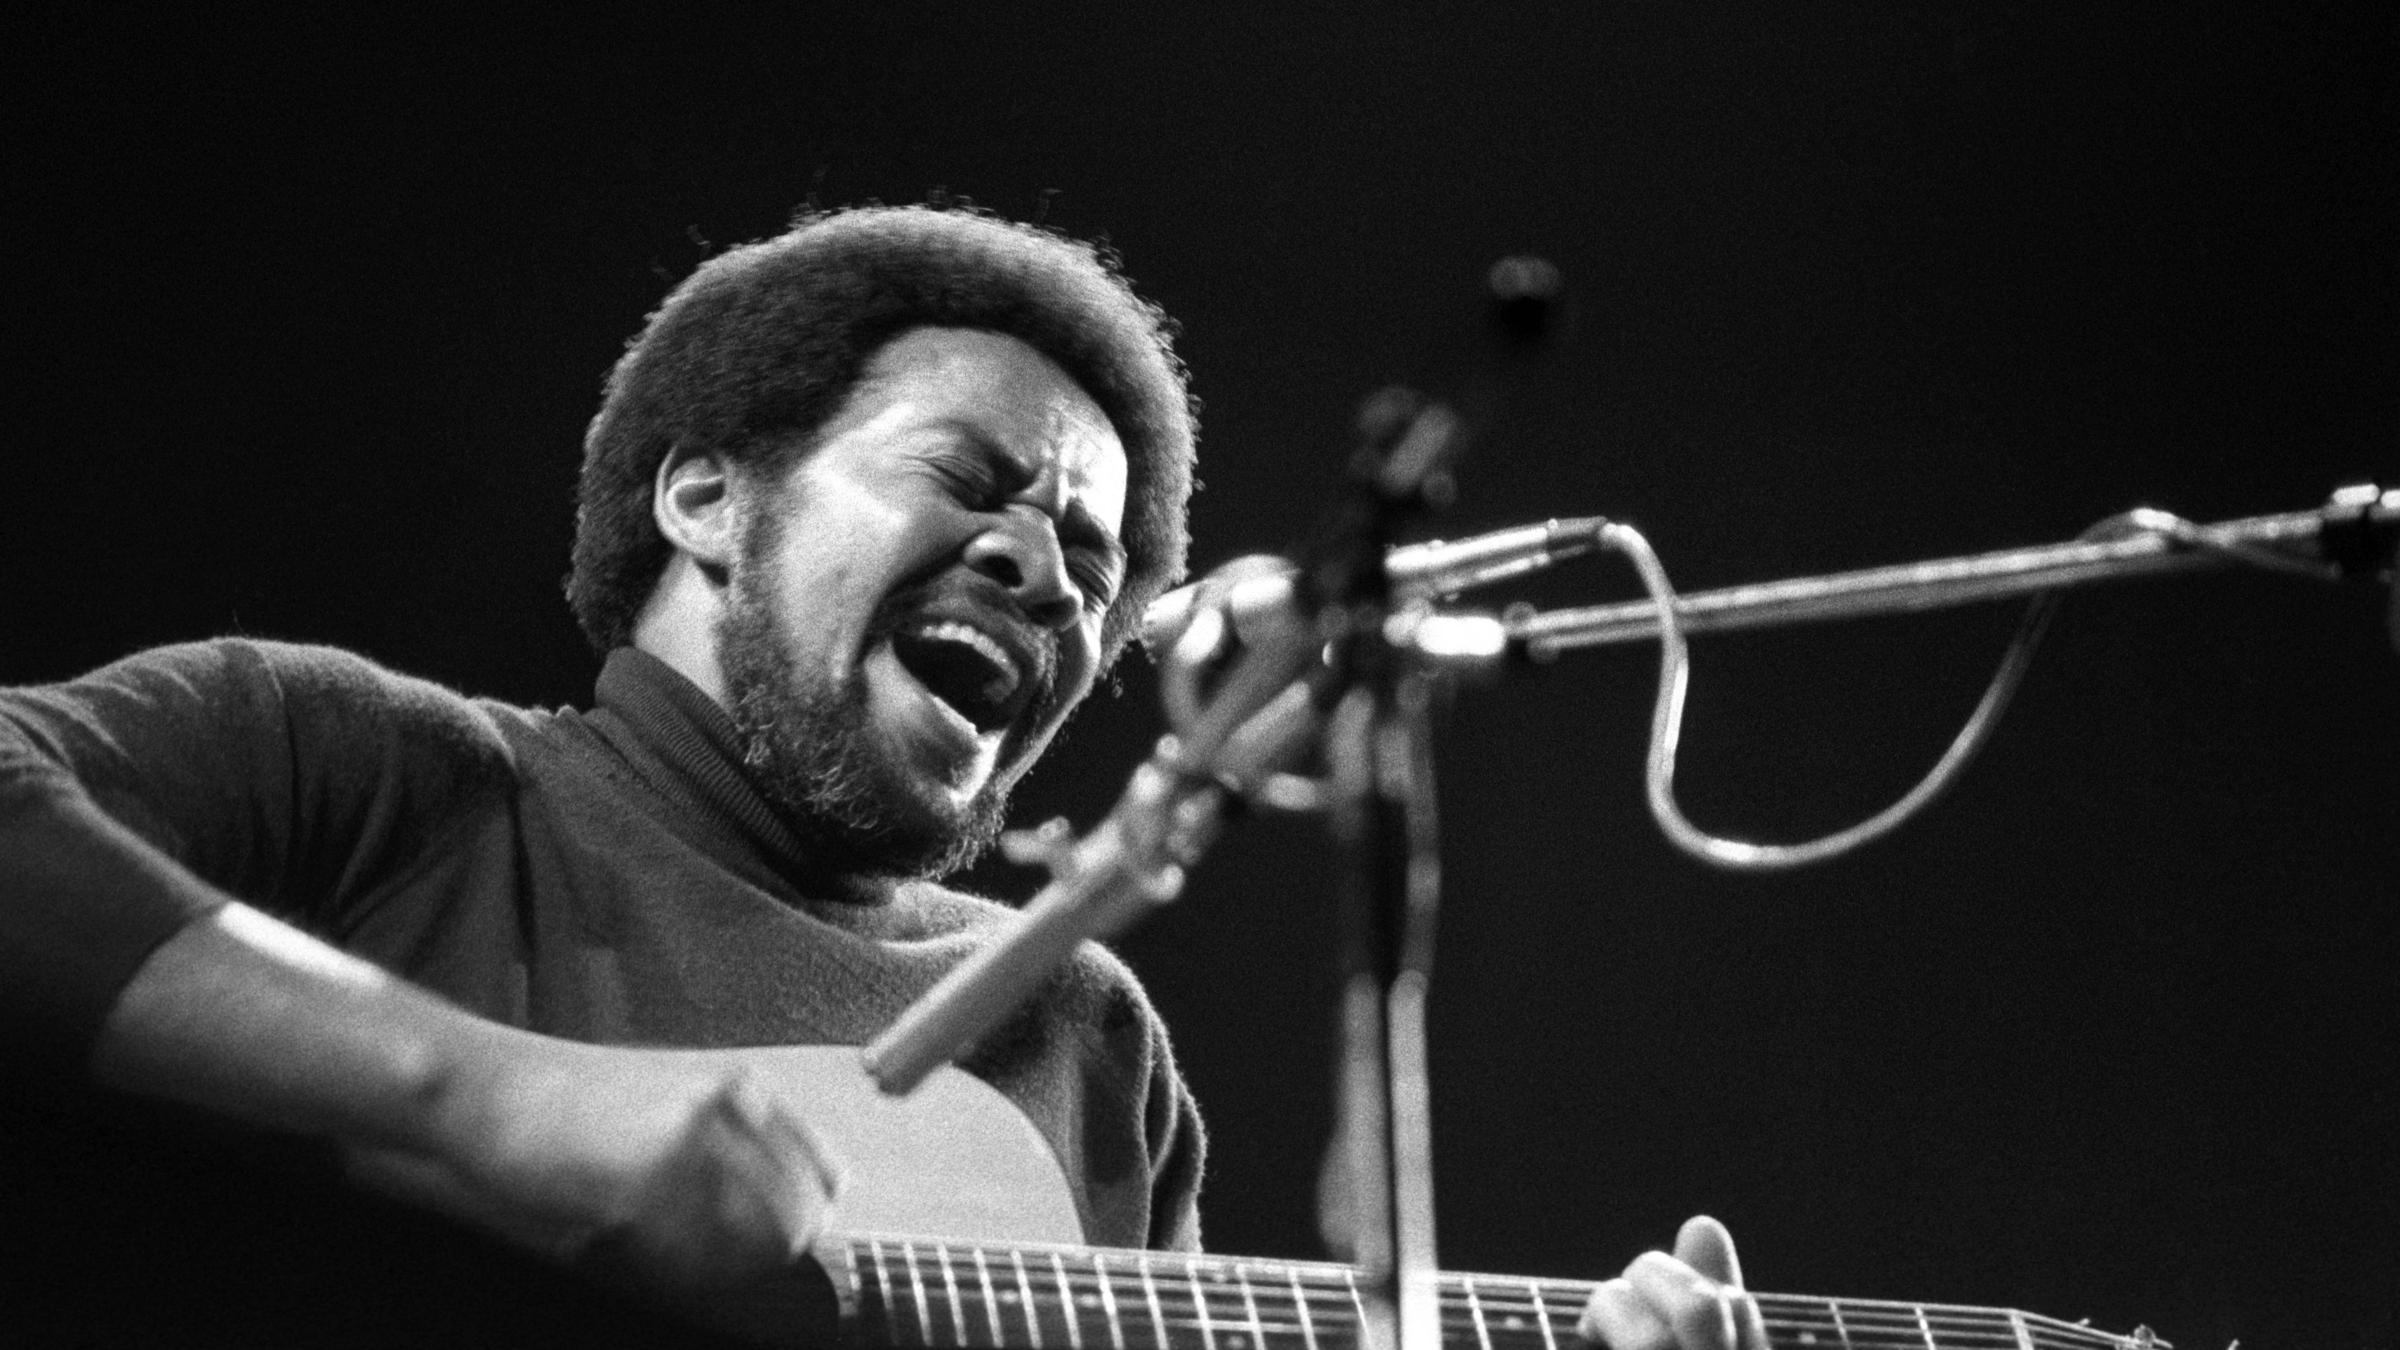 Bill withers music